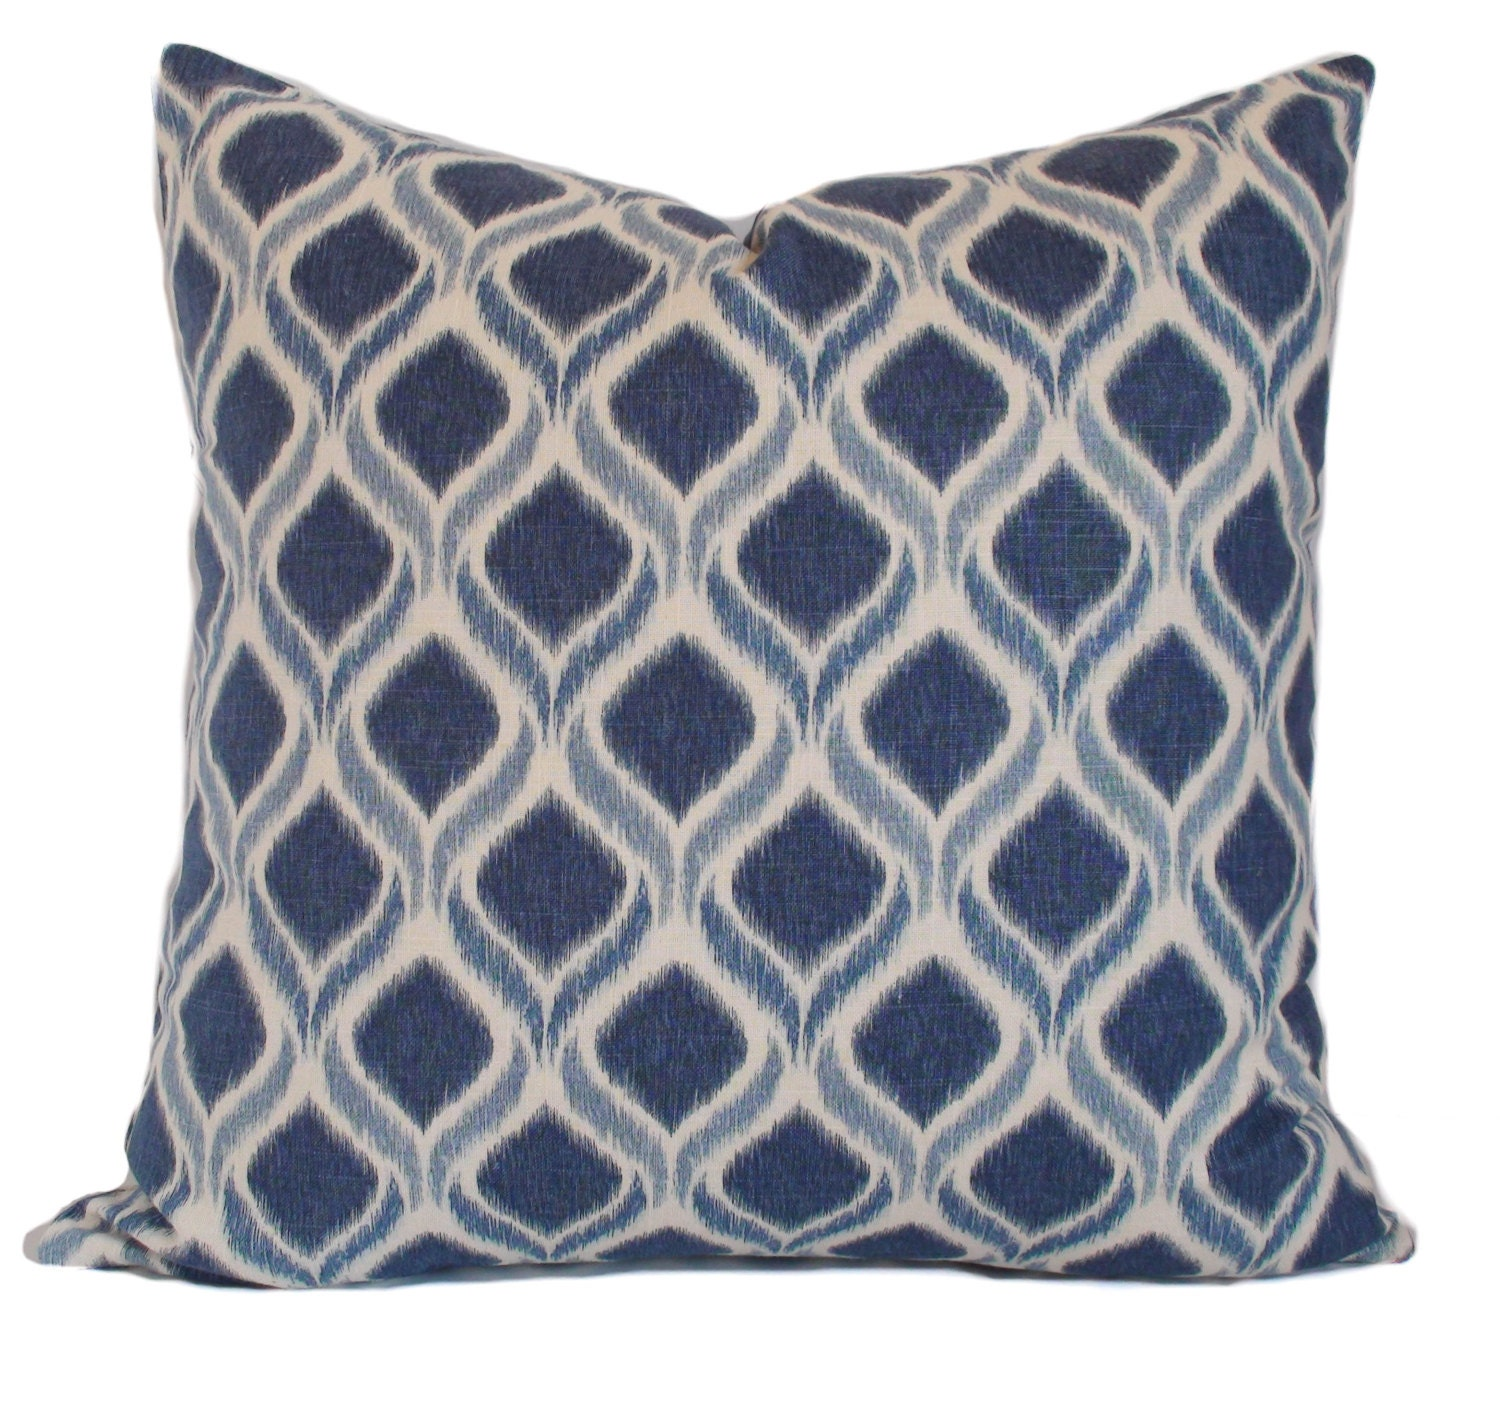 22x22 Decorative Pillows : Blue pillow cover 22x22 Blue throw pillows Toss pillow